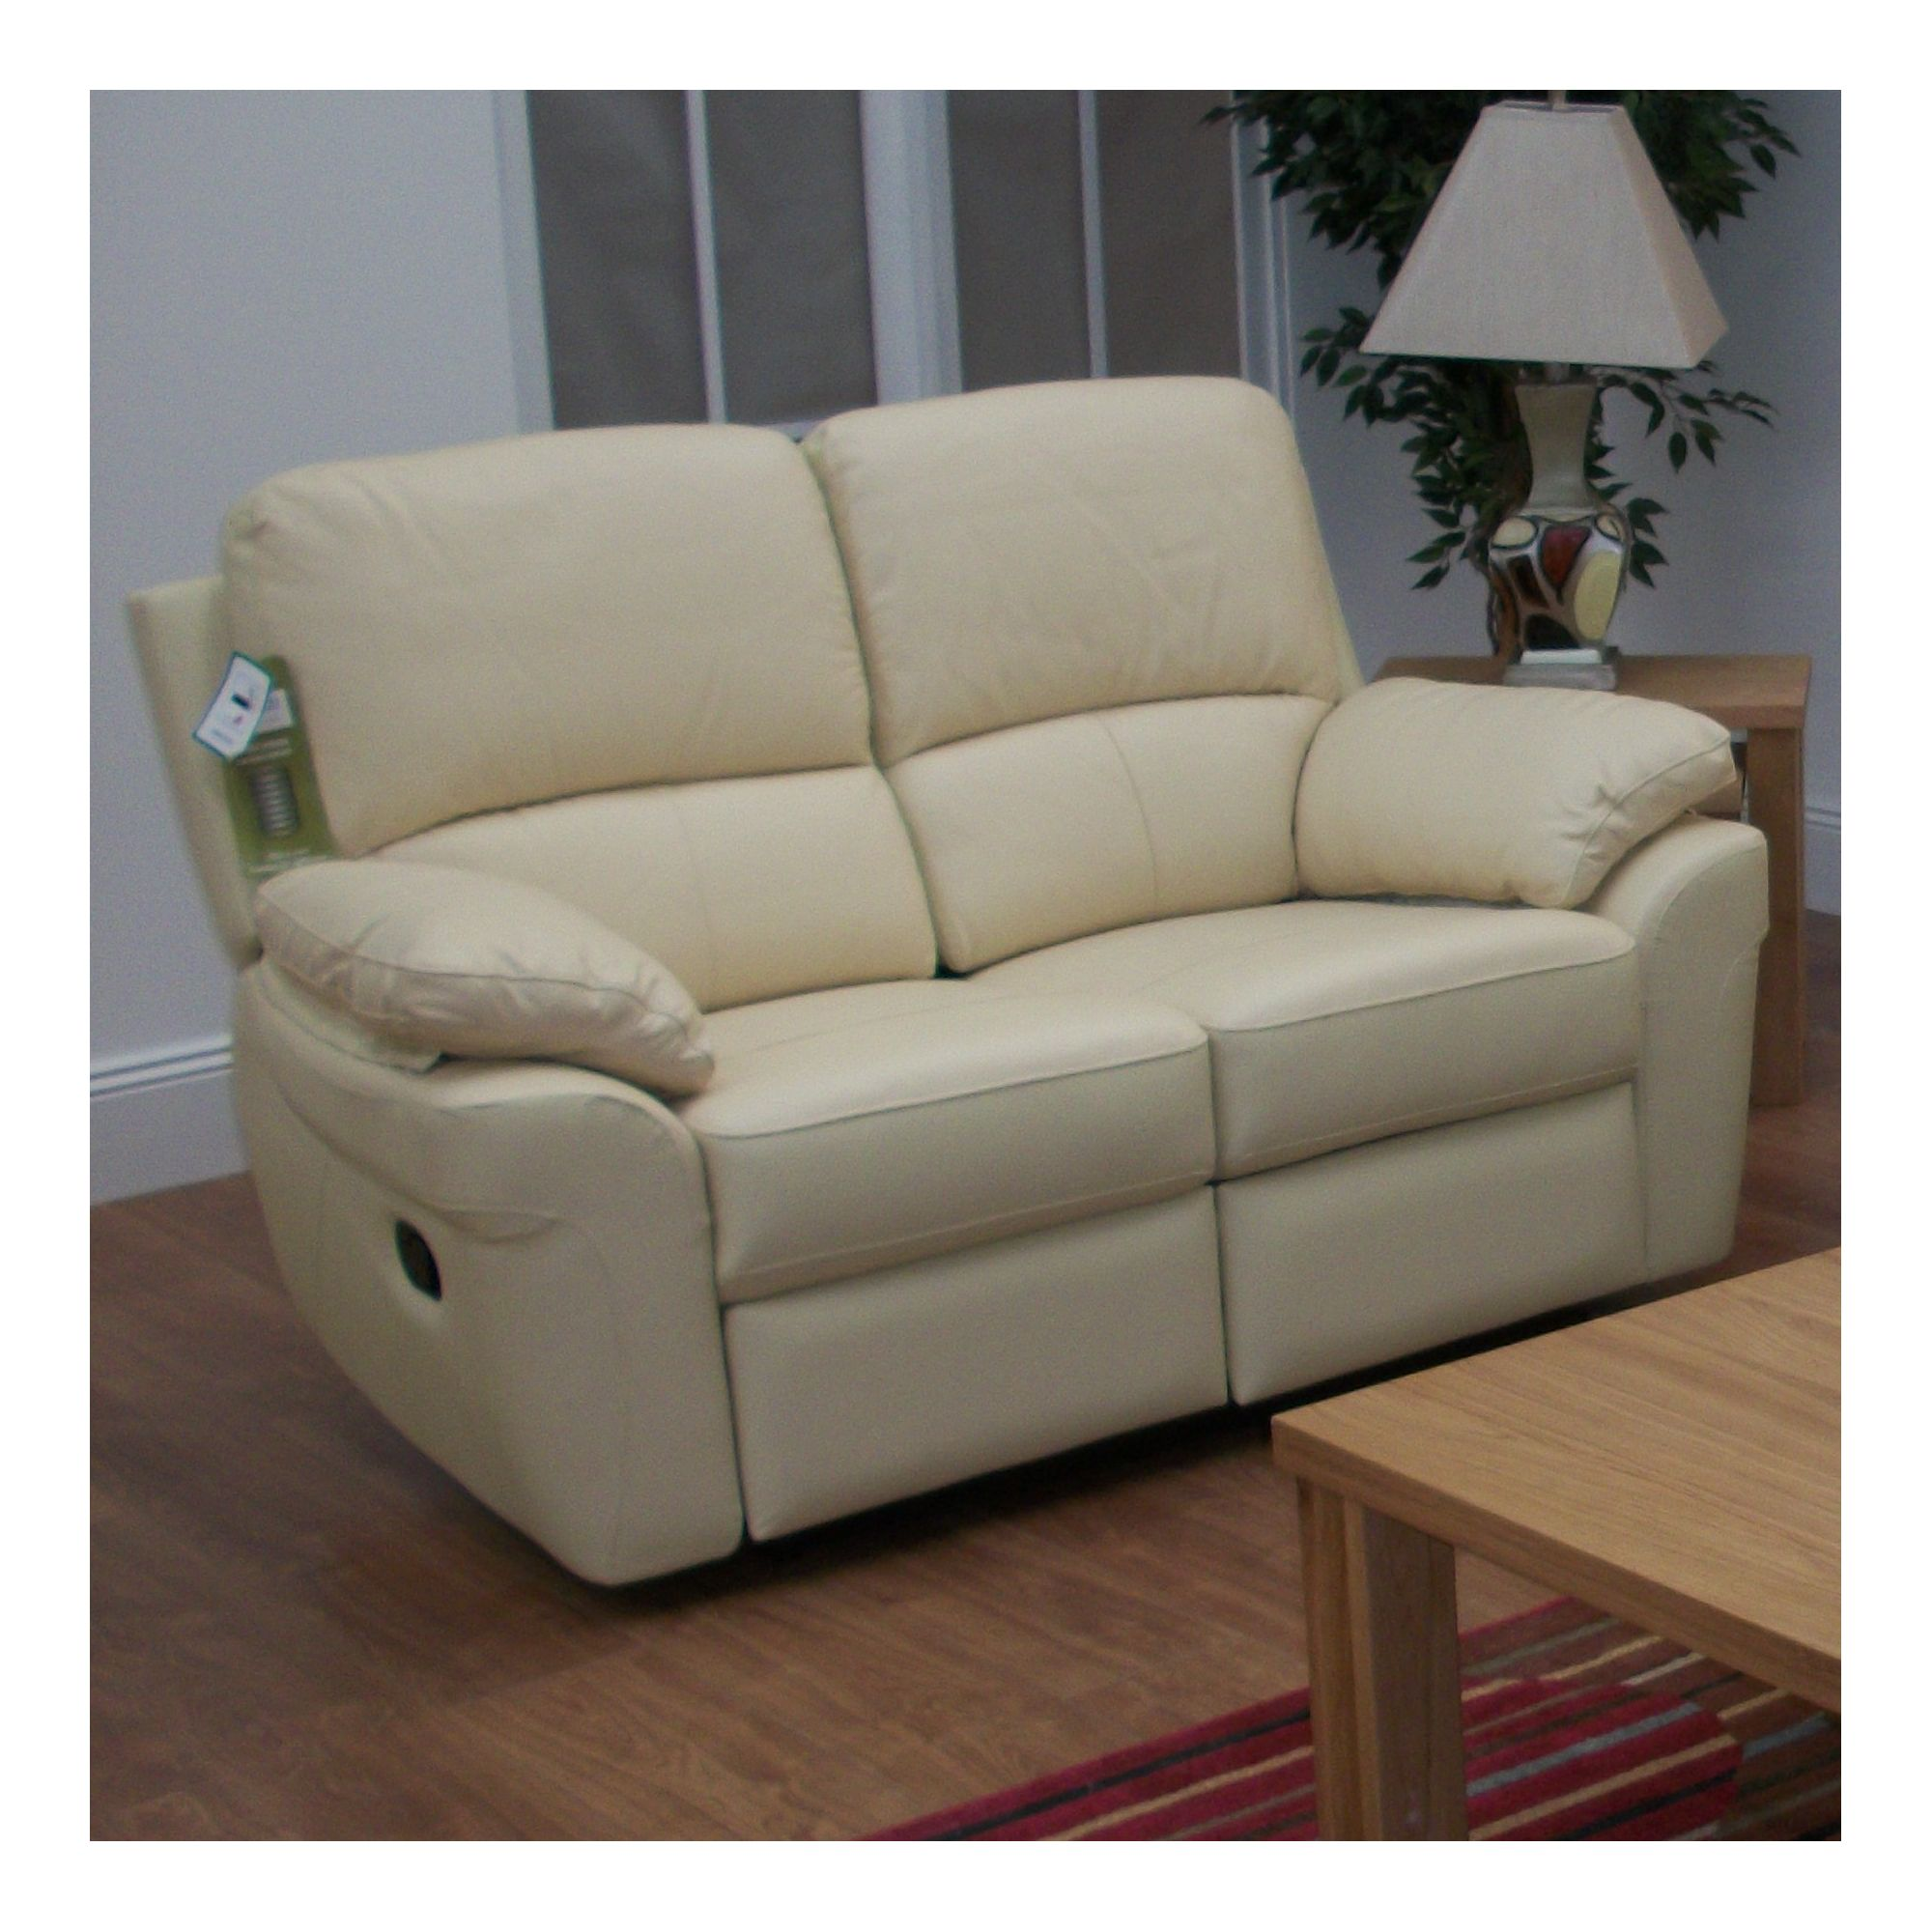 Furniture Link Monzano Two Seat Reclining Sofa in Ivory - Ivory at Tesco Direct